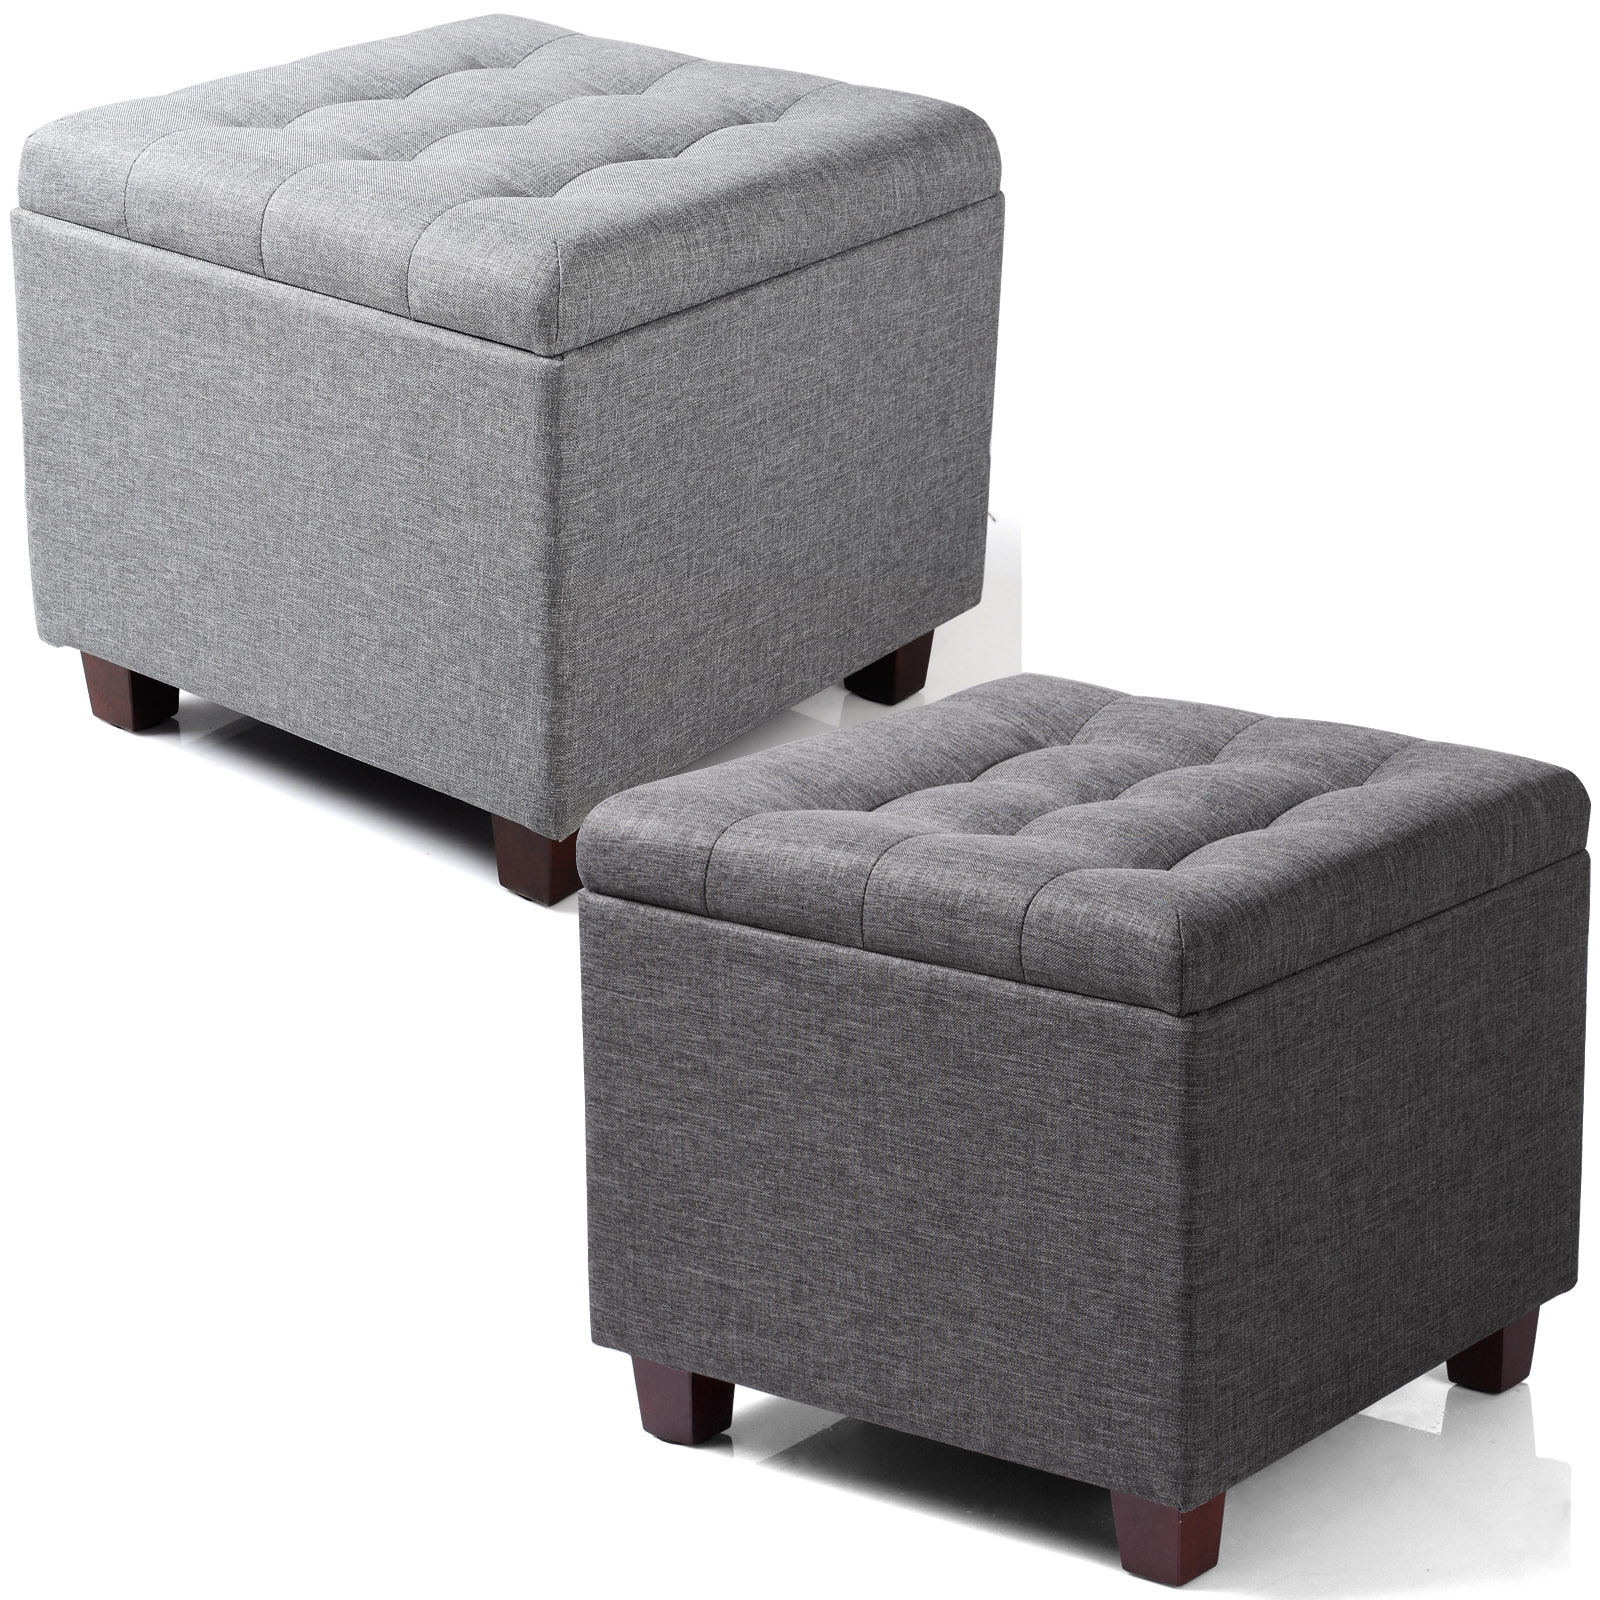 Ottoman Storage Box Foot Stool Seat Single Folding Linen